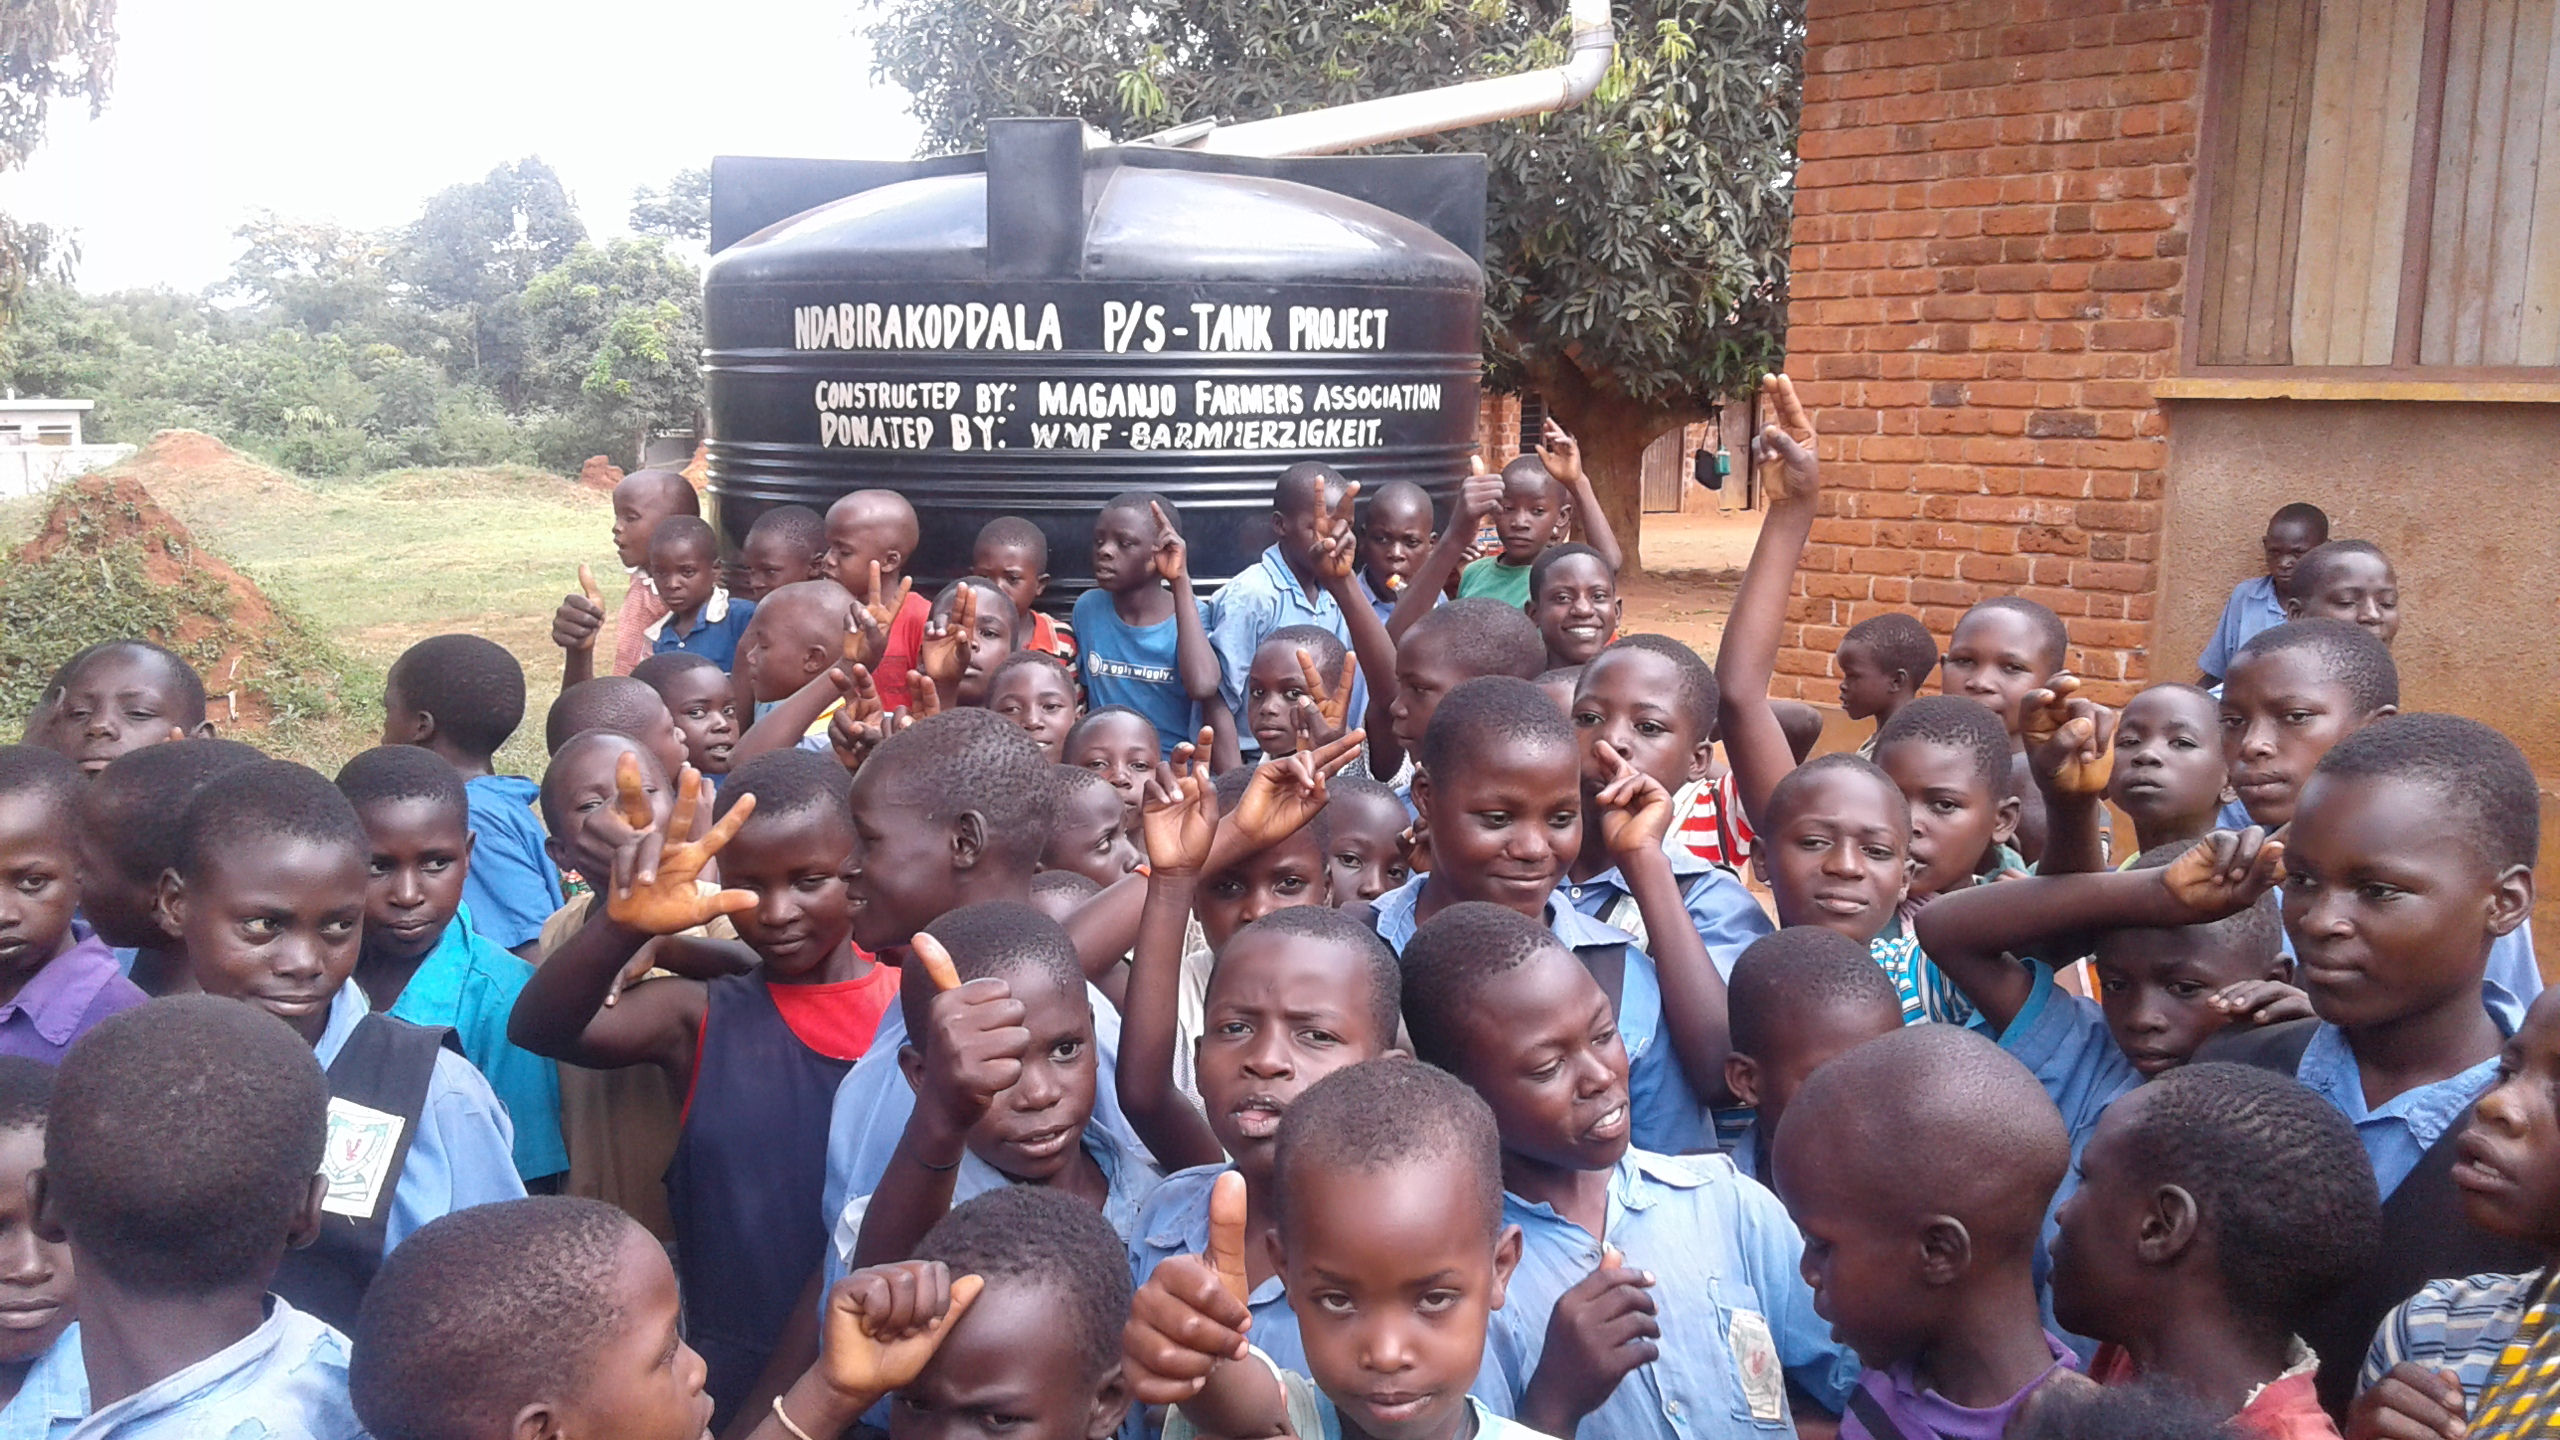 Happy moments, children in Ndabilakoddala primary school cerebrates for a newly constructed tank sponsored by CESA-Uganda